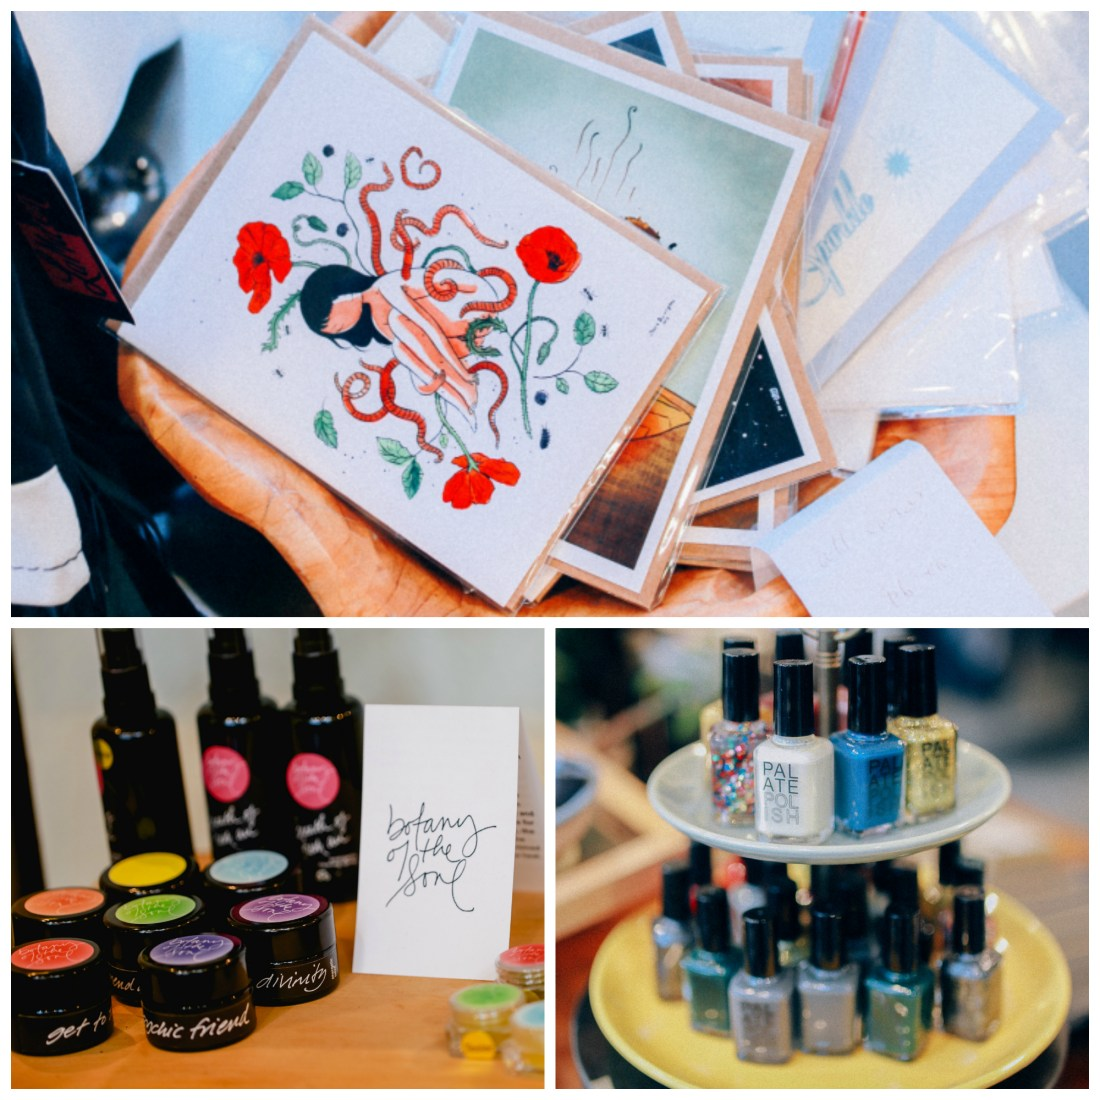 Handmade art, notecards, body products, and nail polish at Sassafras in Seattle.